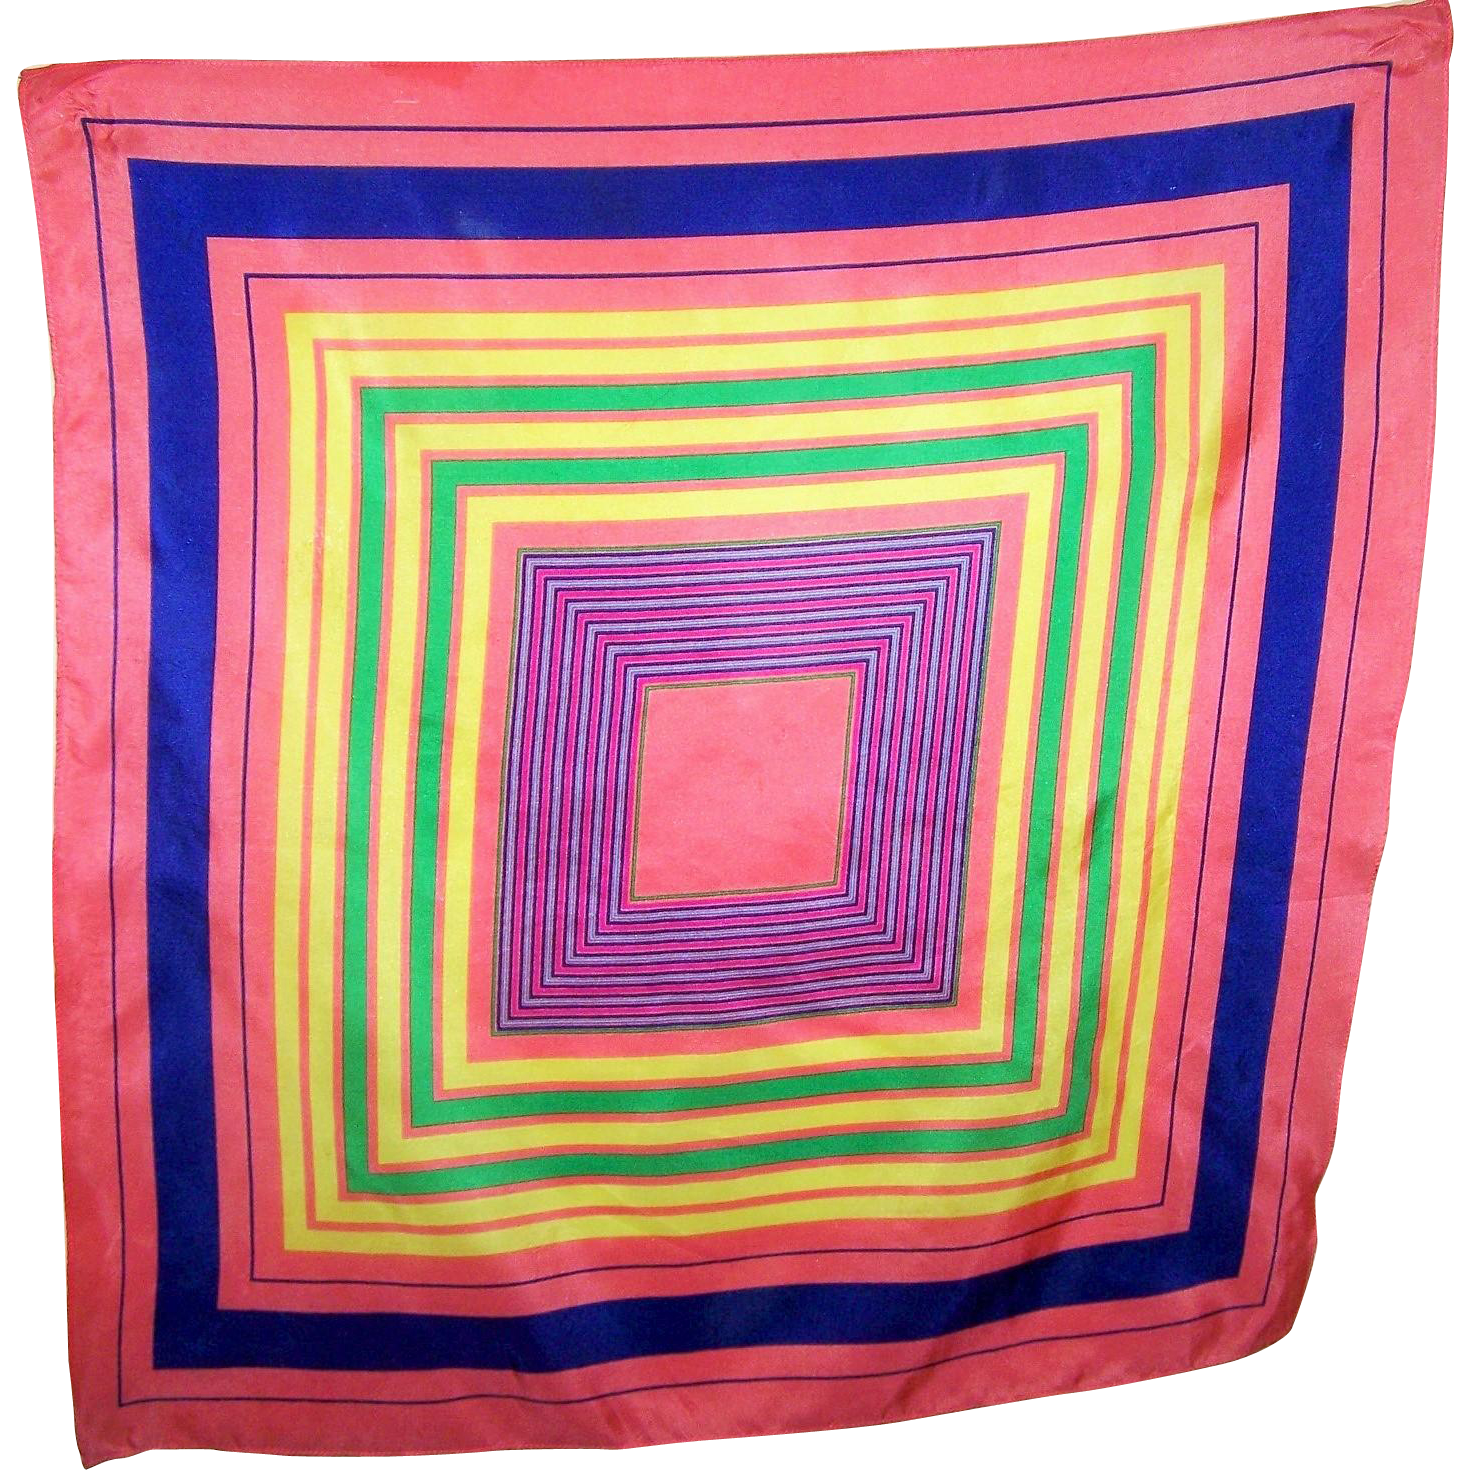 Rather Unique Hypnotizing OP ART Pattern Colorful Ladies Fashion Scarf Wearable ART